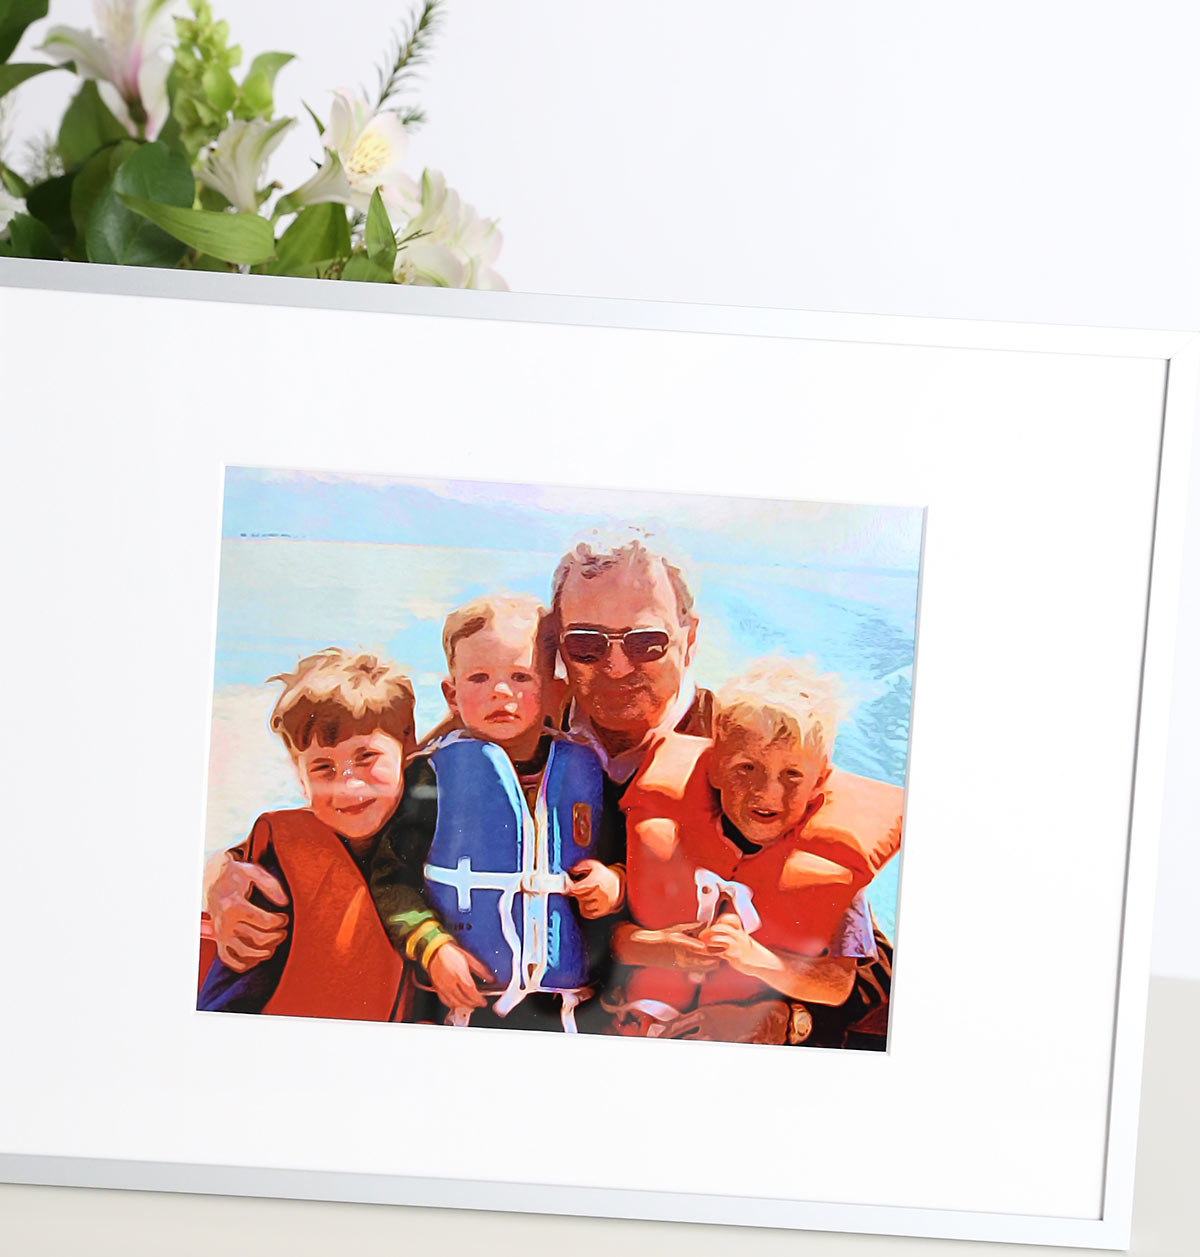 Illustrated photo of a grandpa and three little boys